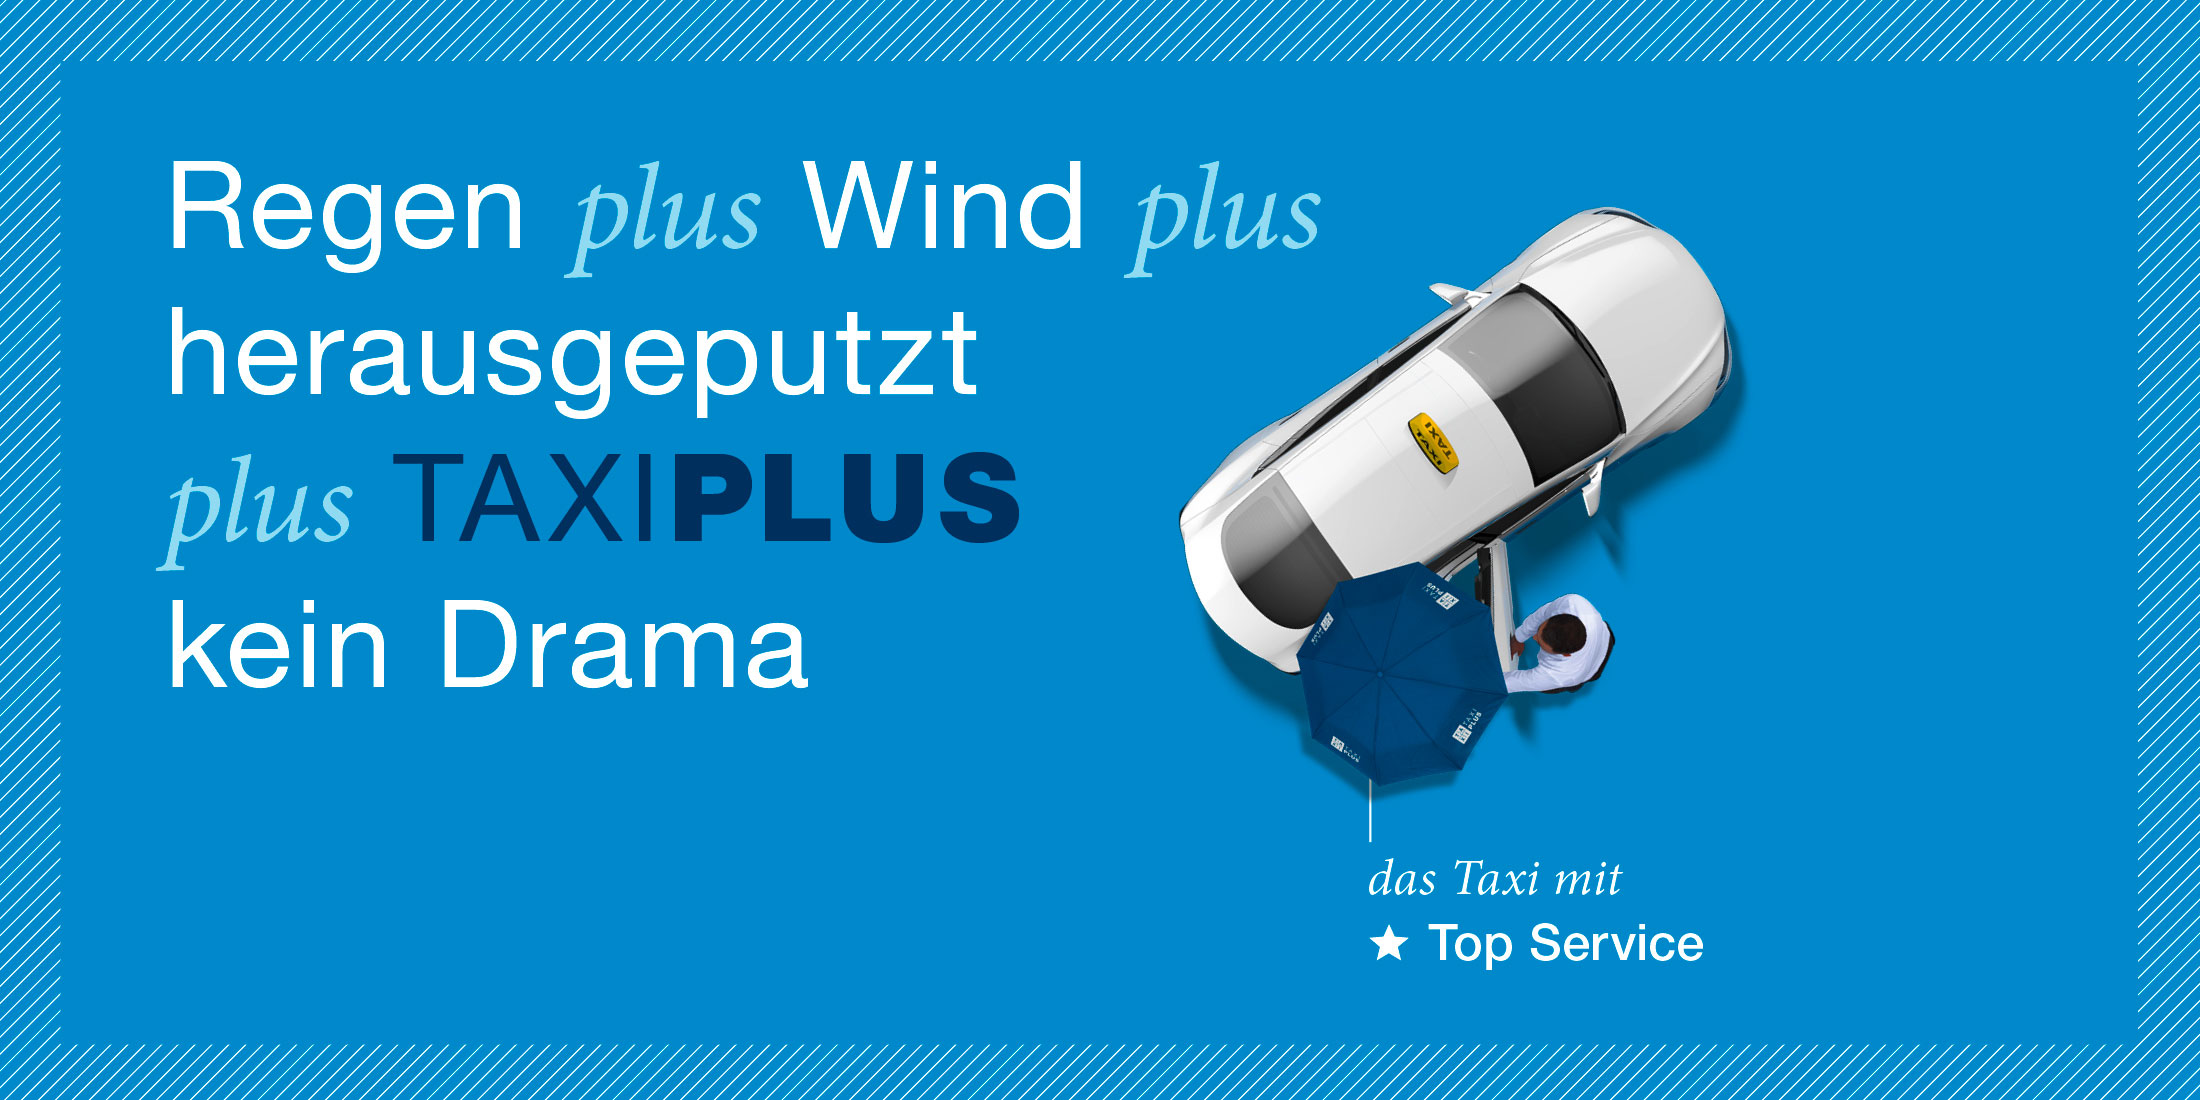 An add for TaxiPlus. A headline is shown. A TaxiPlus is shown from above, the driver holding open the passenger door open. A line connects the cab to a special TaxiPlus feature.